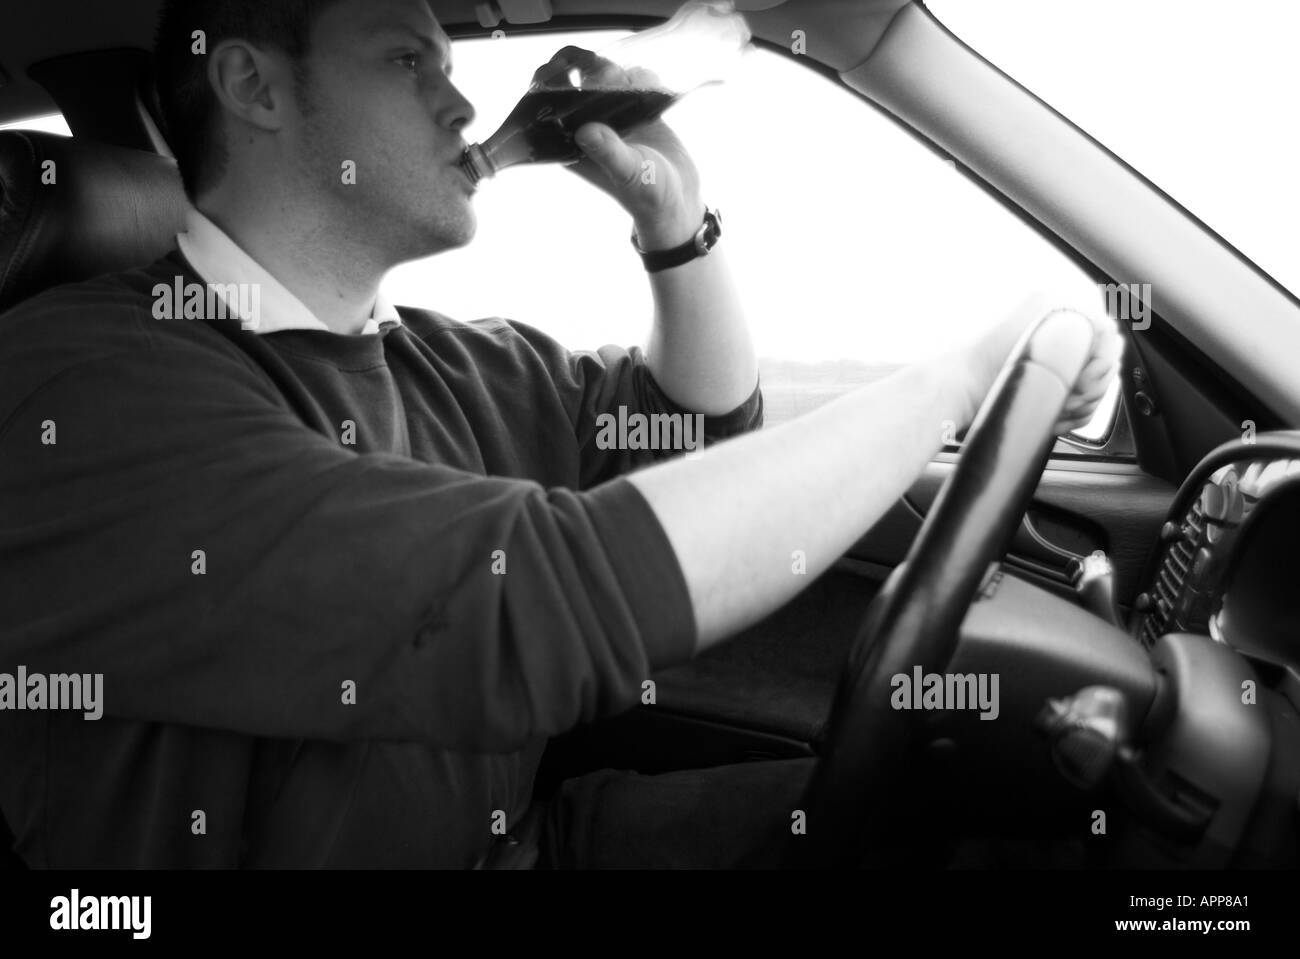 Distracted Car Driver Drinking Soft Drink Drunk Beer At The Wheel Stock Photo Alamy